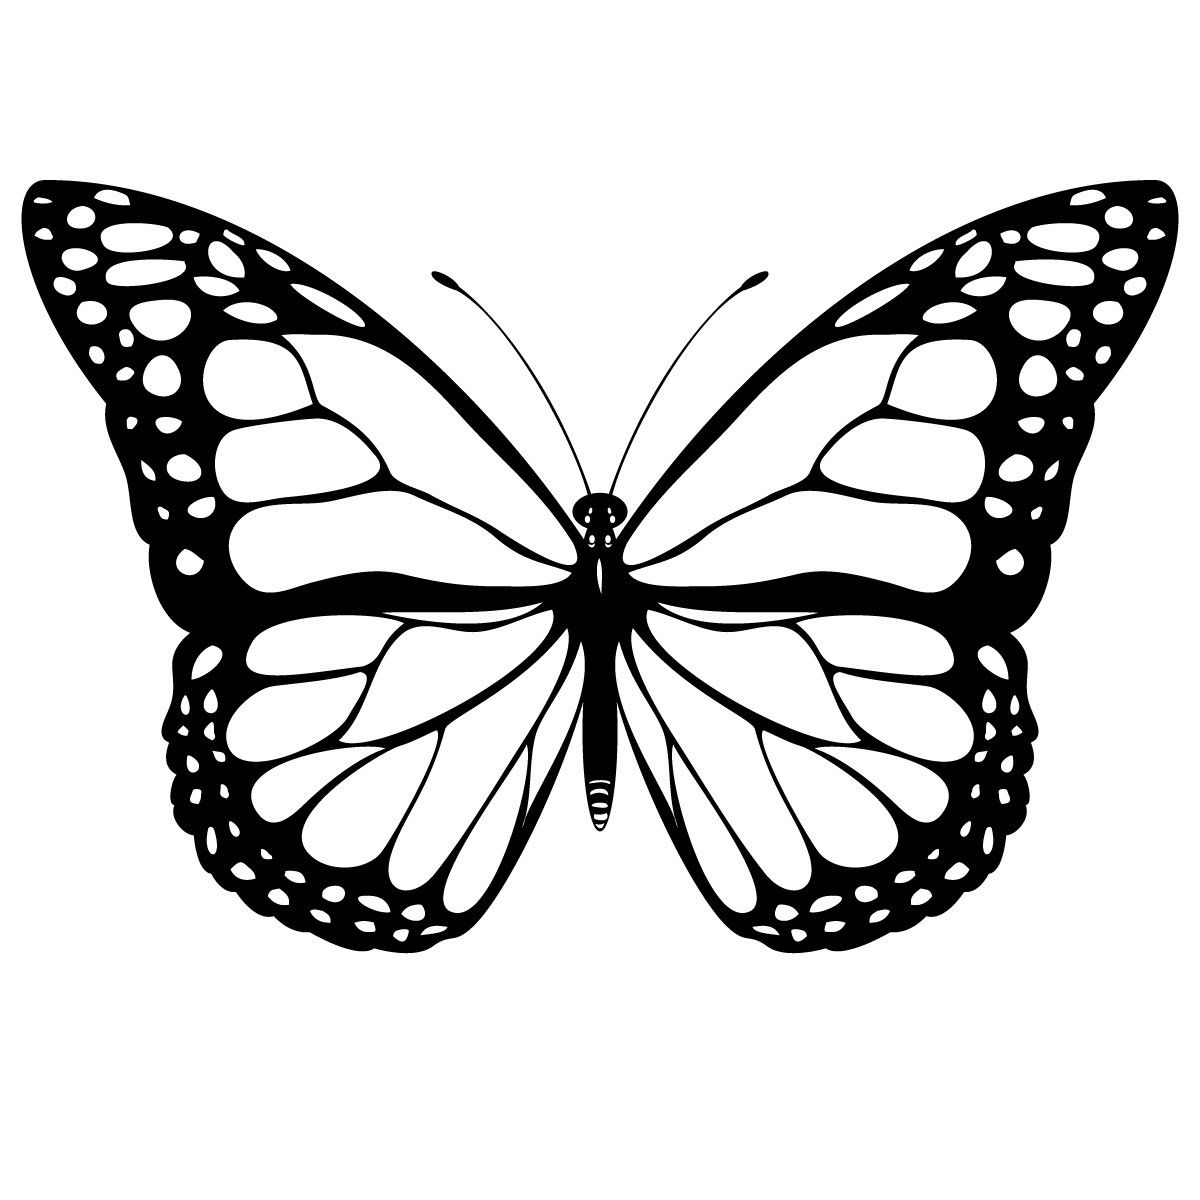 coloring pages butterflies Free Printable Butterfly Coloring Pages For Kids | butterfly  coloring pages butterflies